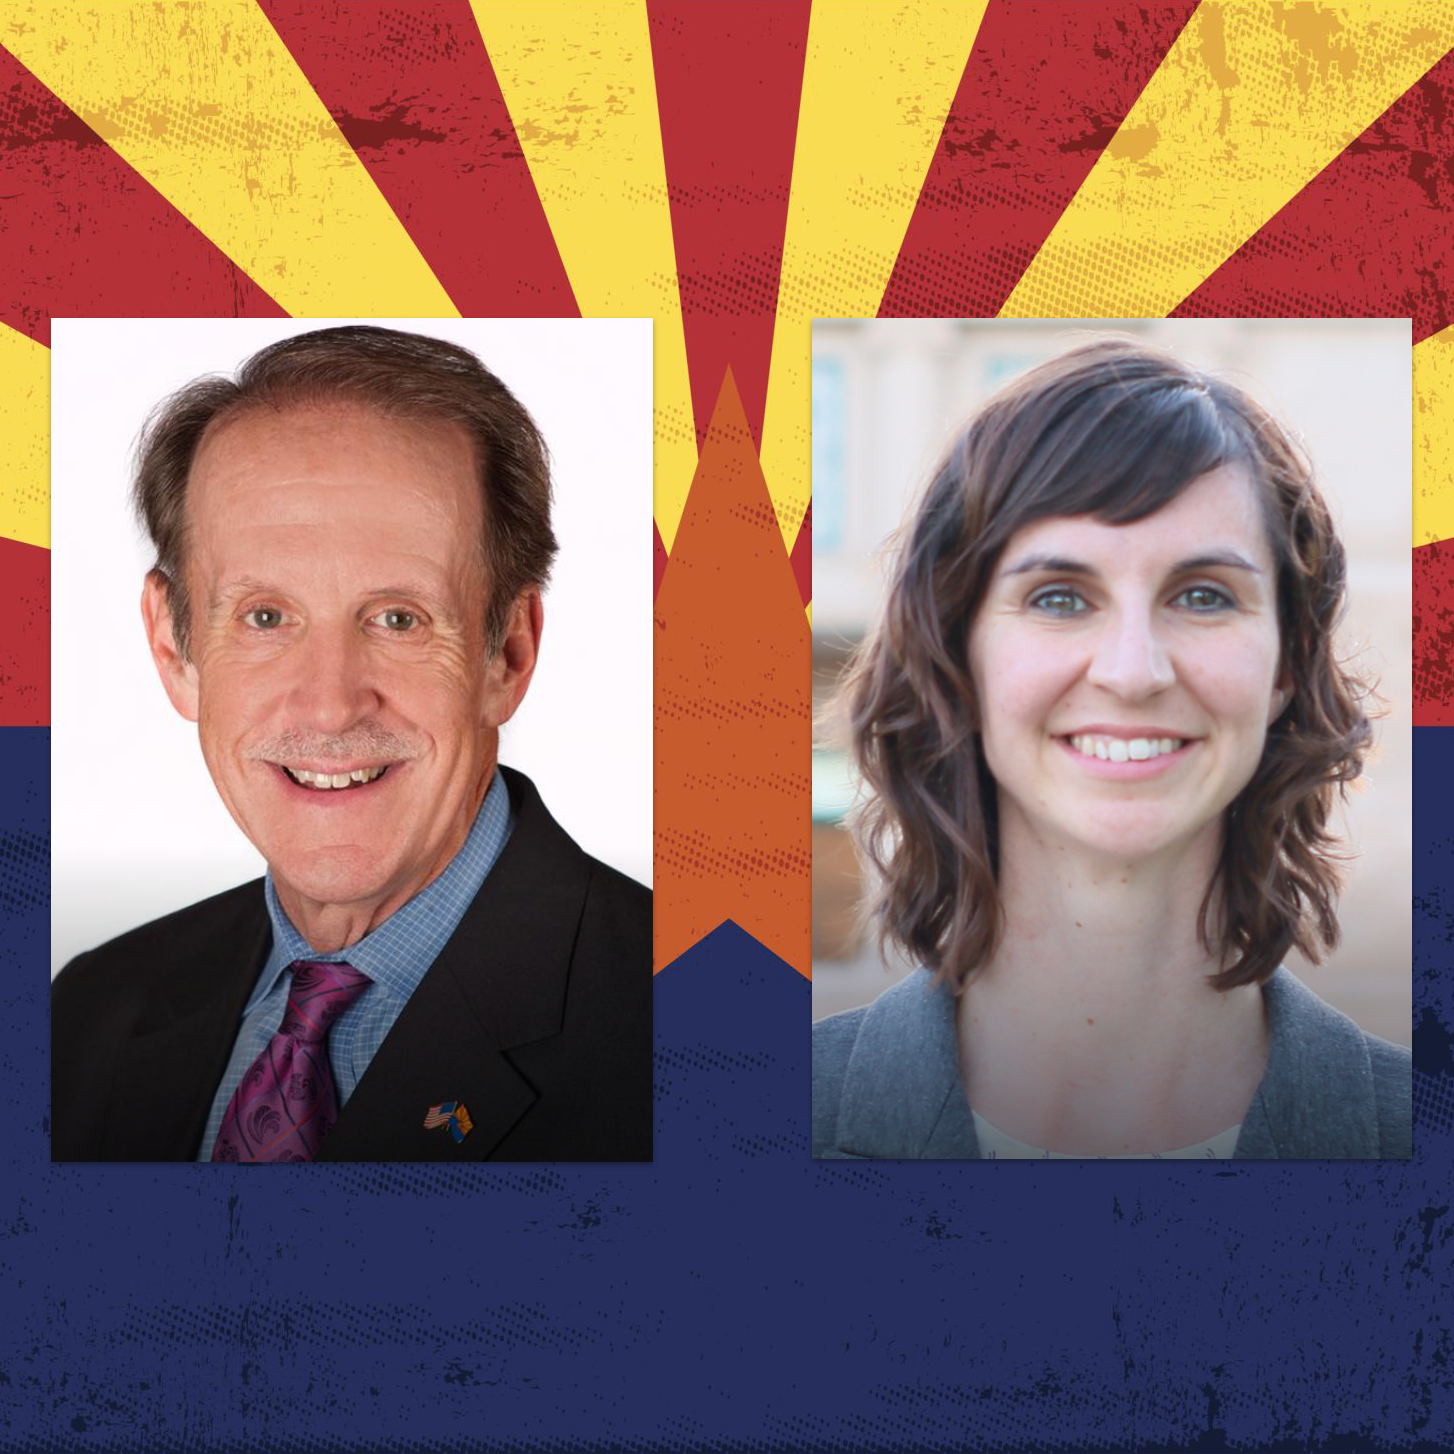 Hoffman declared winner over Riggs in Arizona school superintendent race